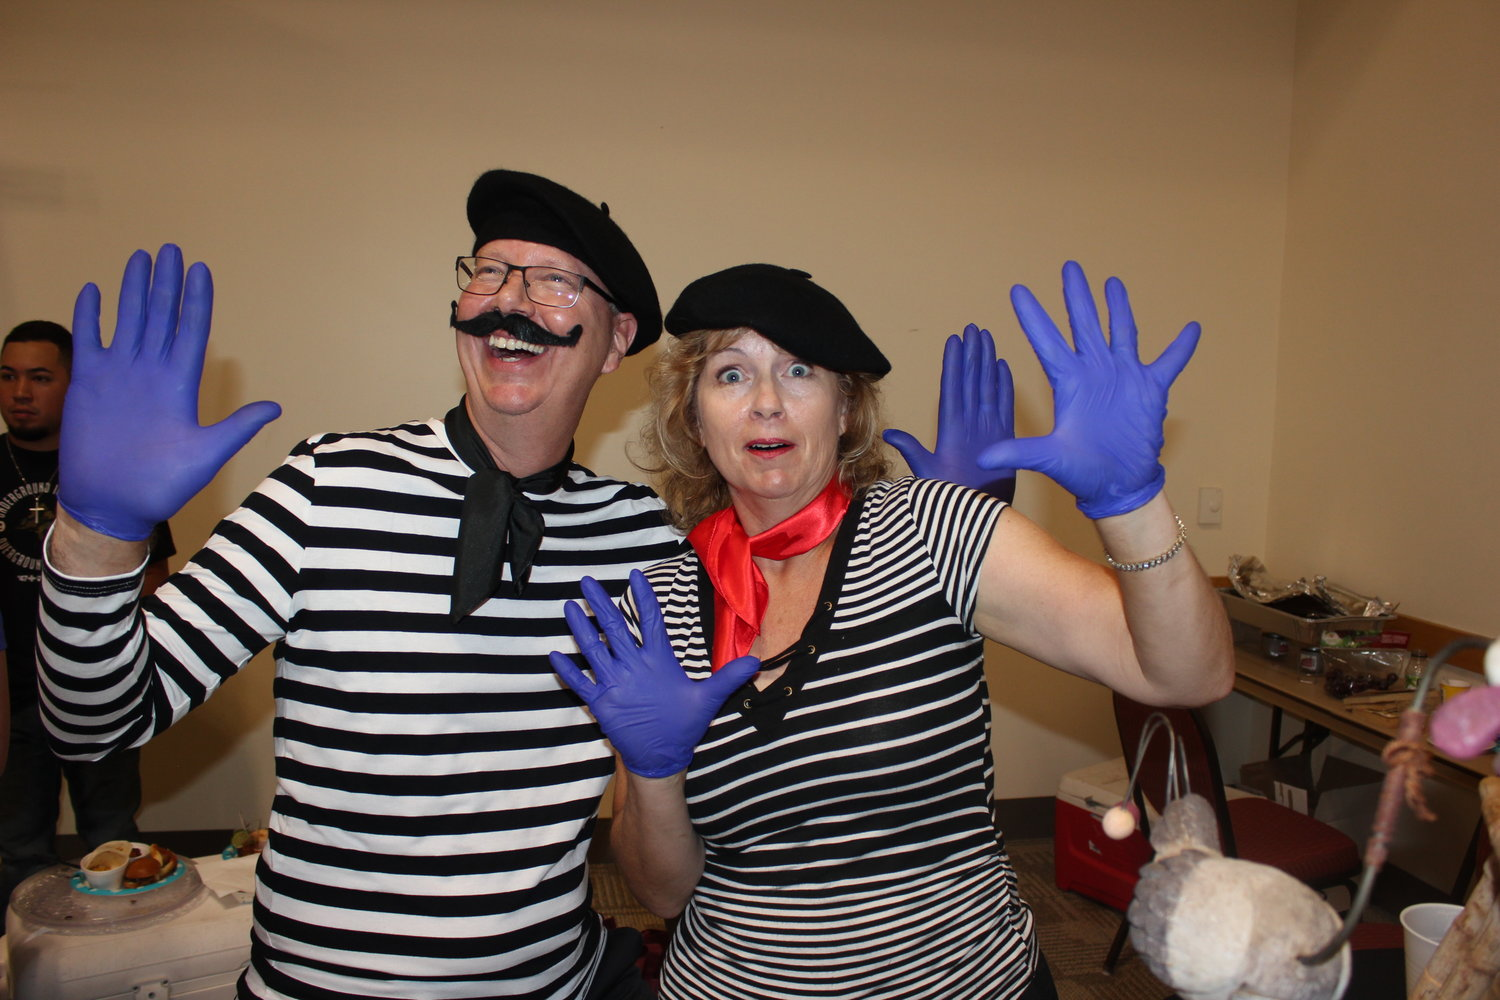 Rob Sharp, and his sister, Rebecca Lescombes, donned French attire for the presentation of their coq au vin dish.